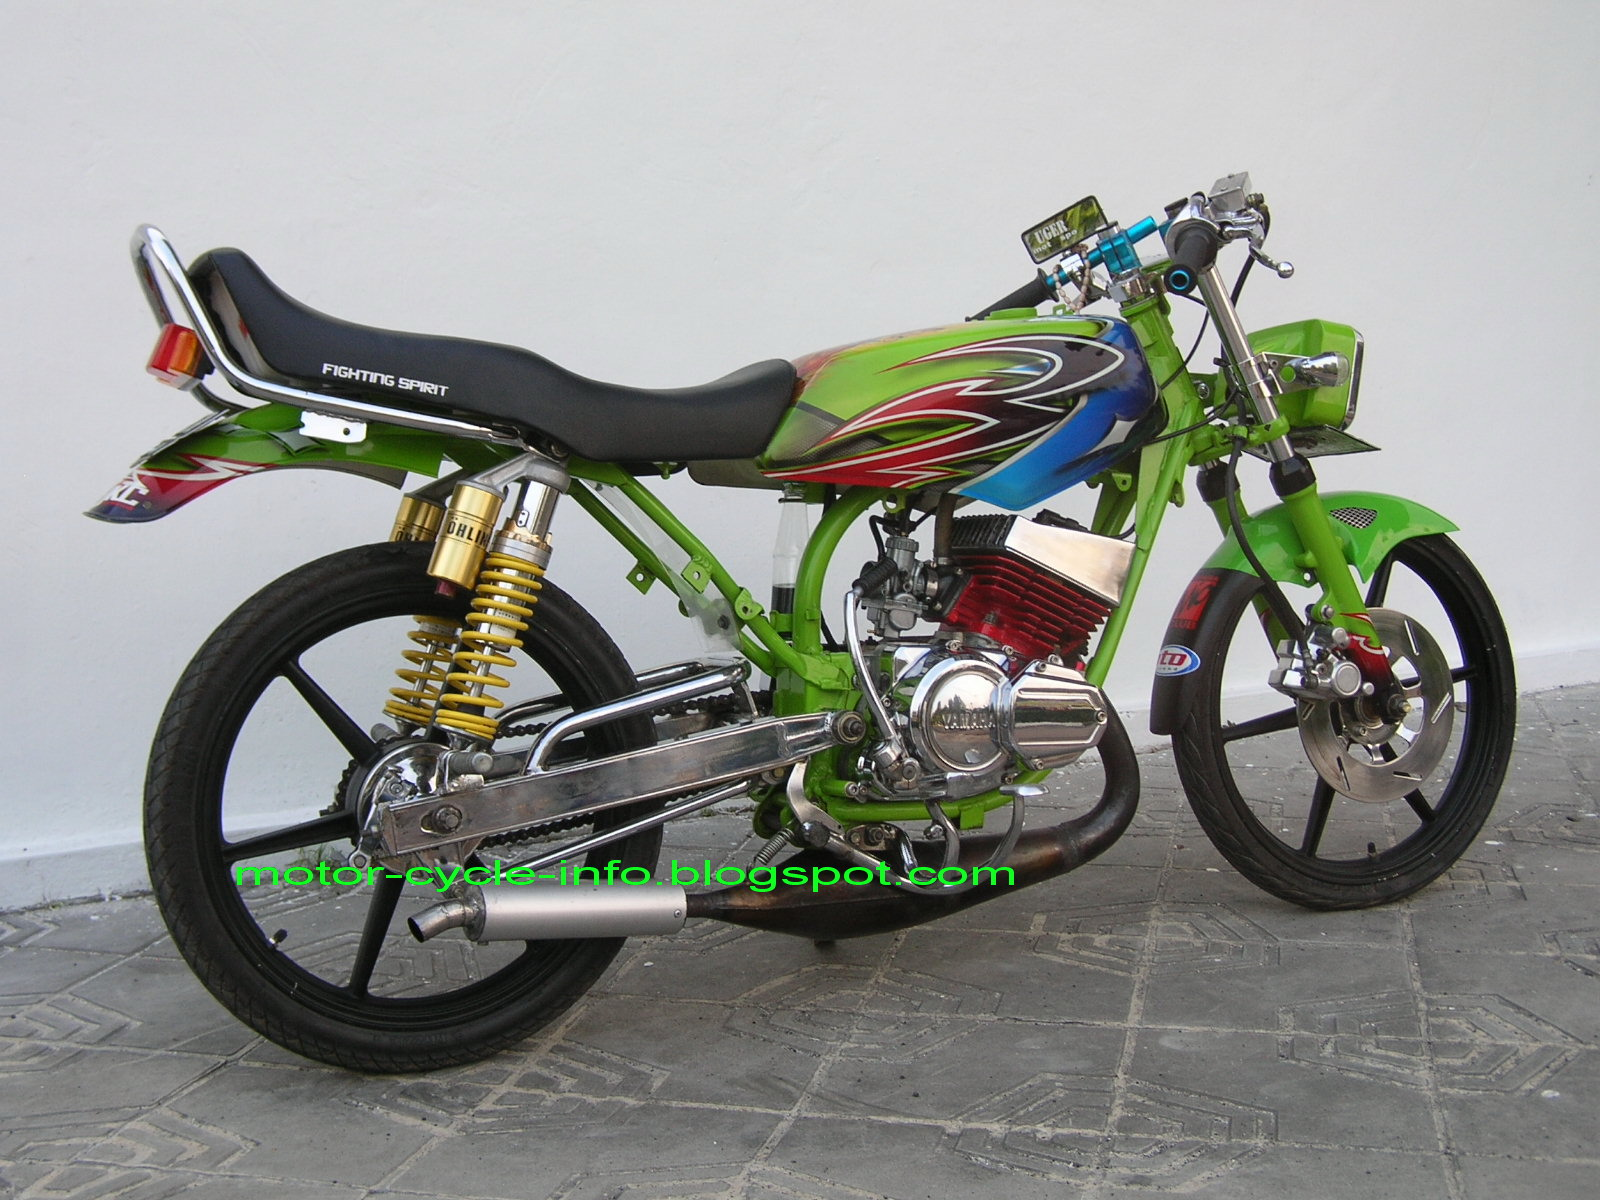 Foto Modifikasi Motor Rx King Drag